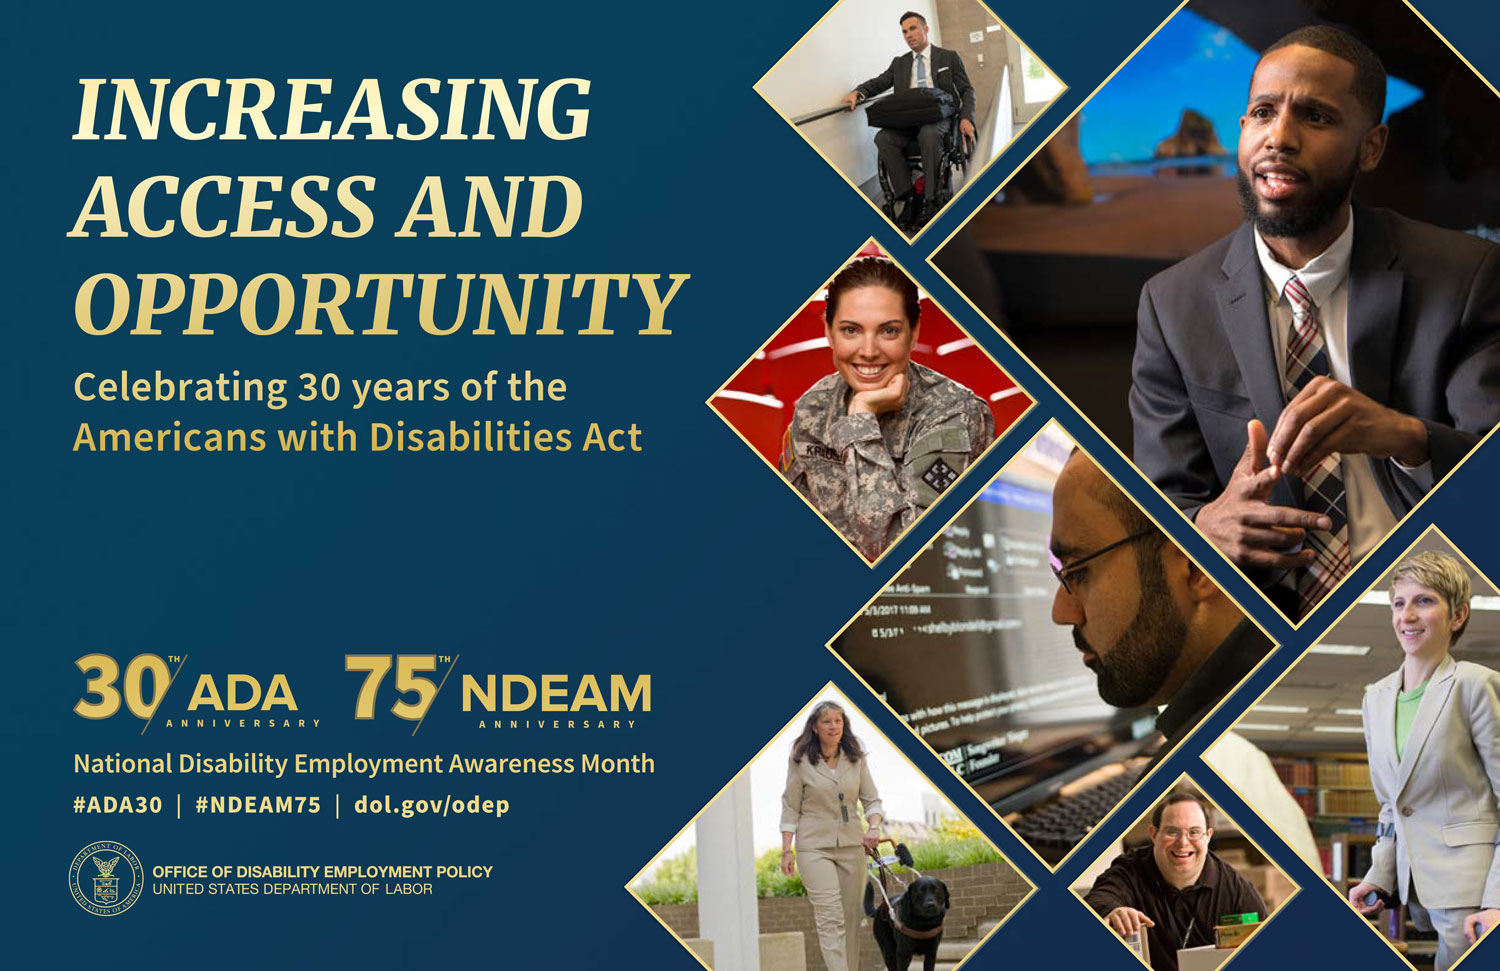 Increasing Access and Opportunity; Celebrating 30 years of the Americans with Disabilities Act; National Disibility Employment Awareness Month; Office of Disability Employment Policy; United States Department of Labor; WIPA